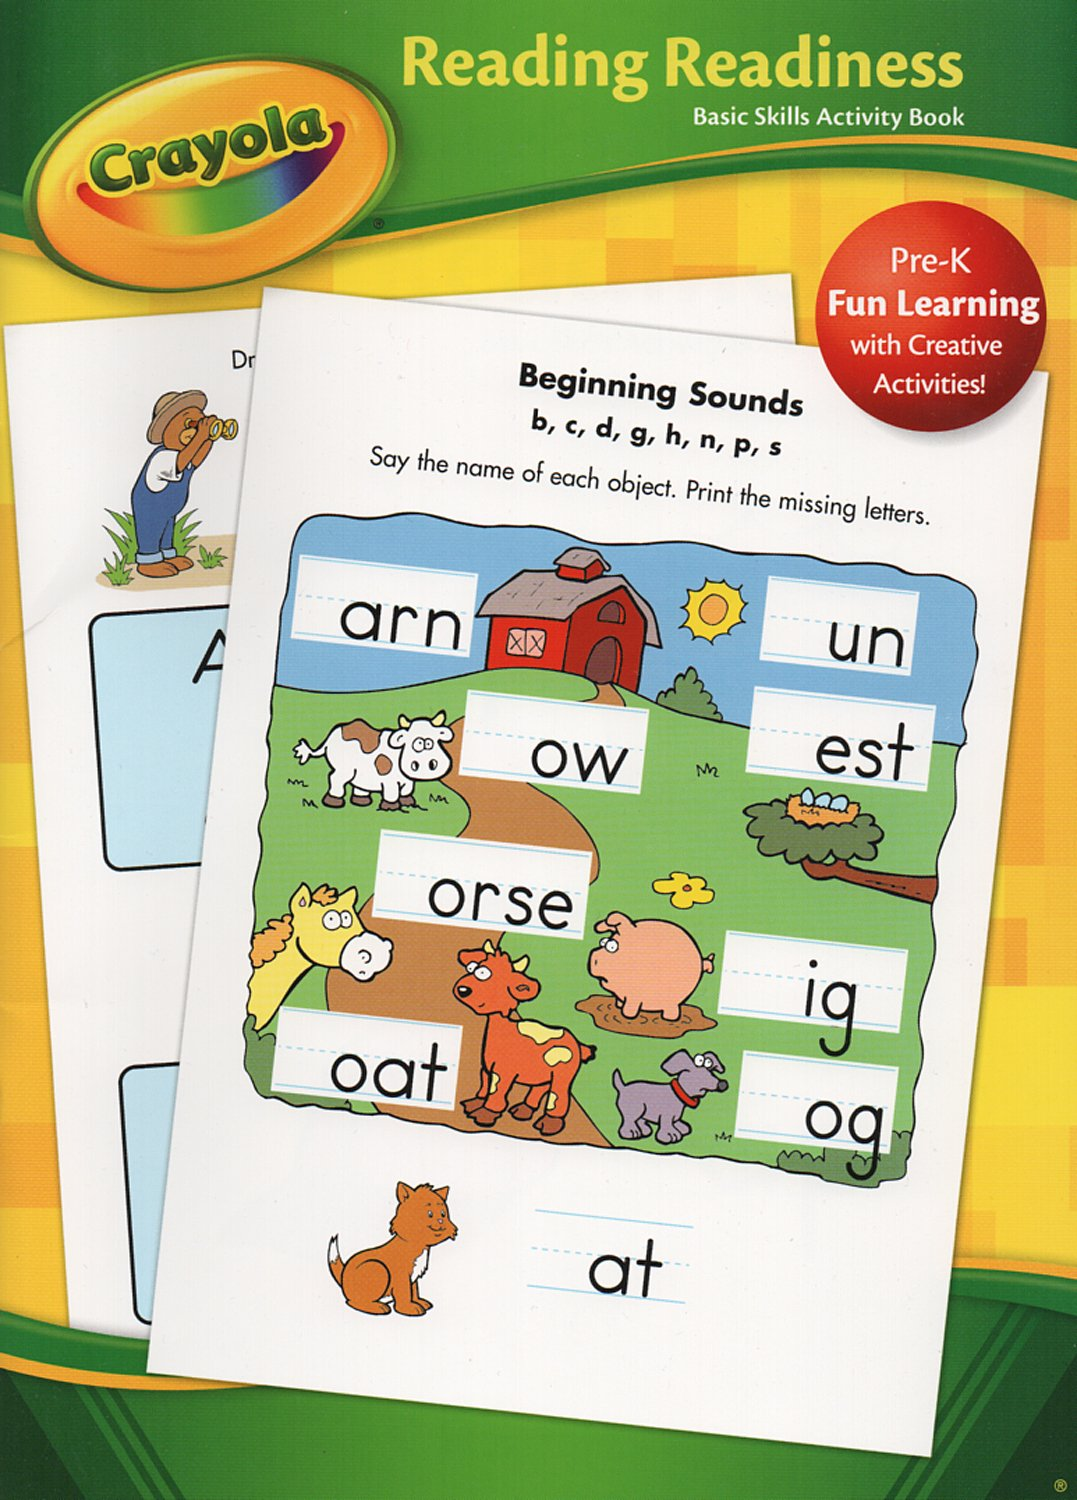 Crayola Basic Skills Activity Book Reading Readiness Pre-K ...